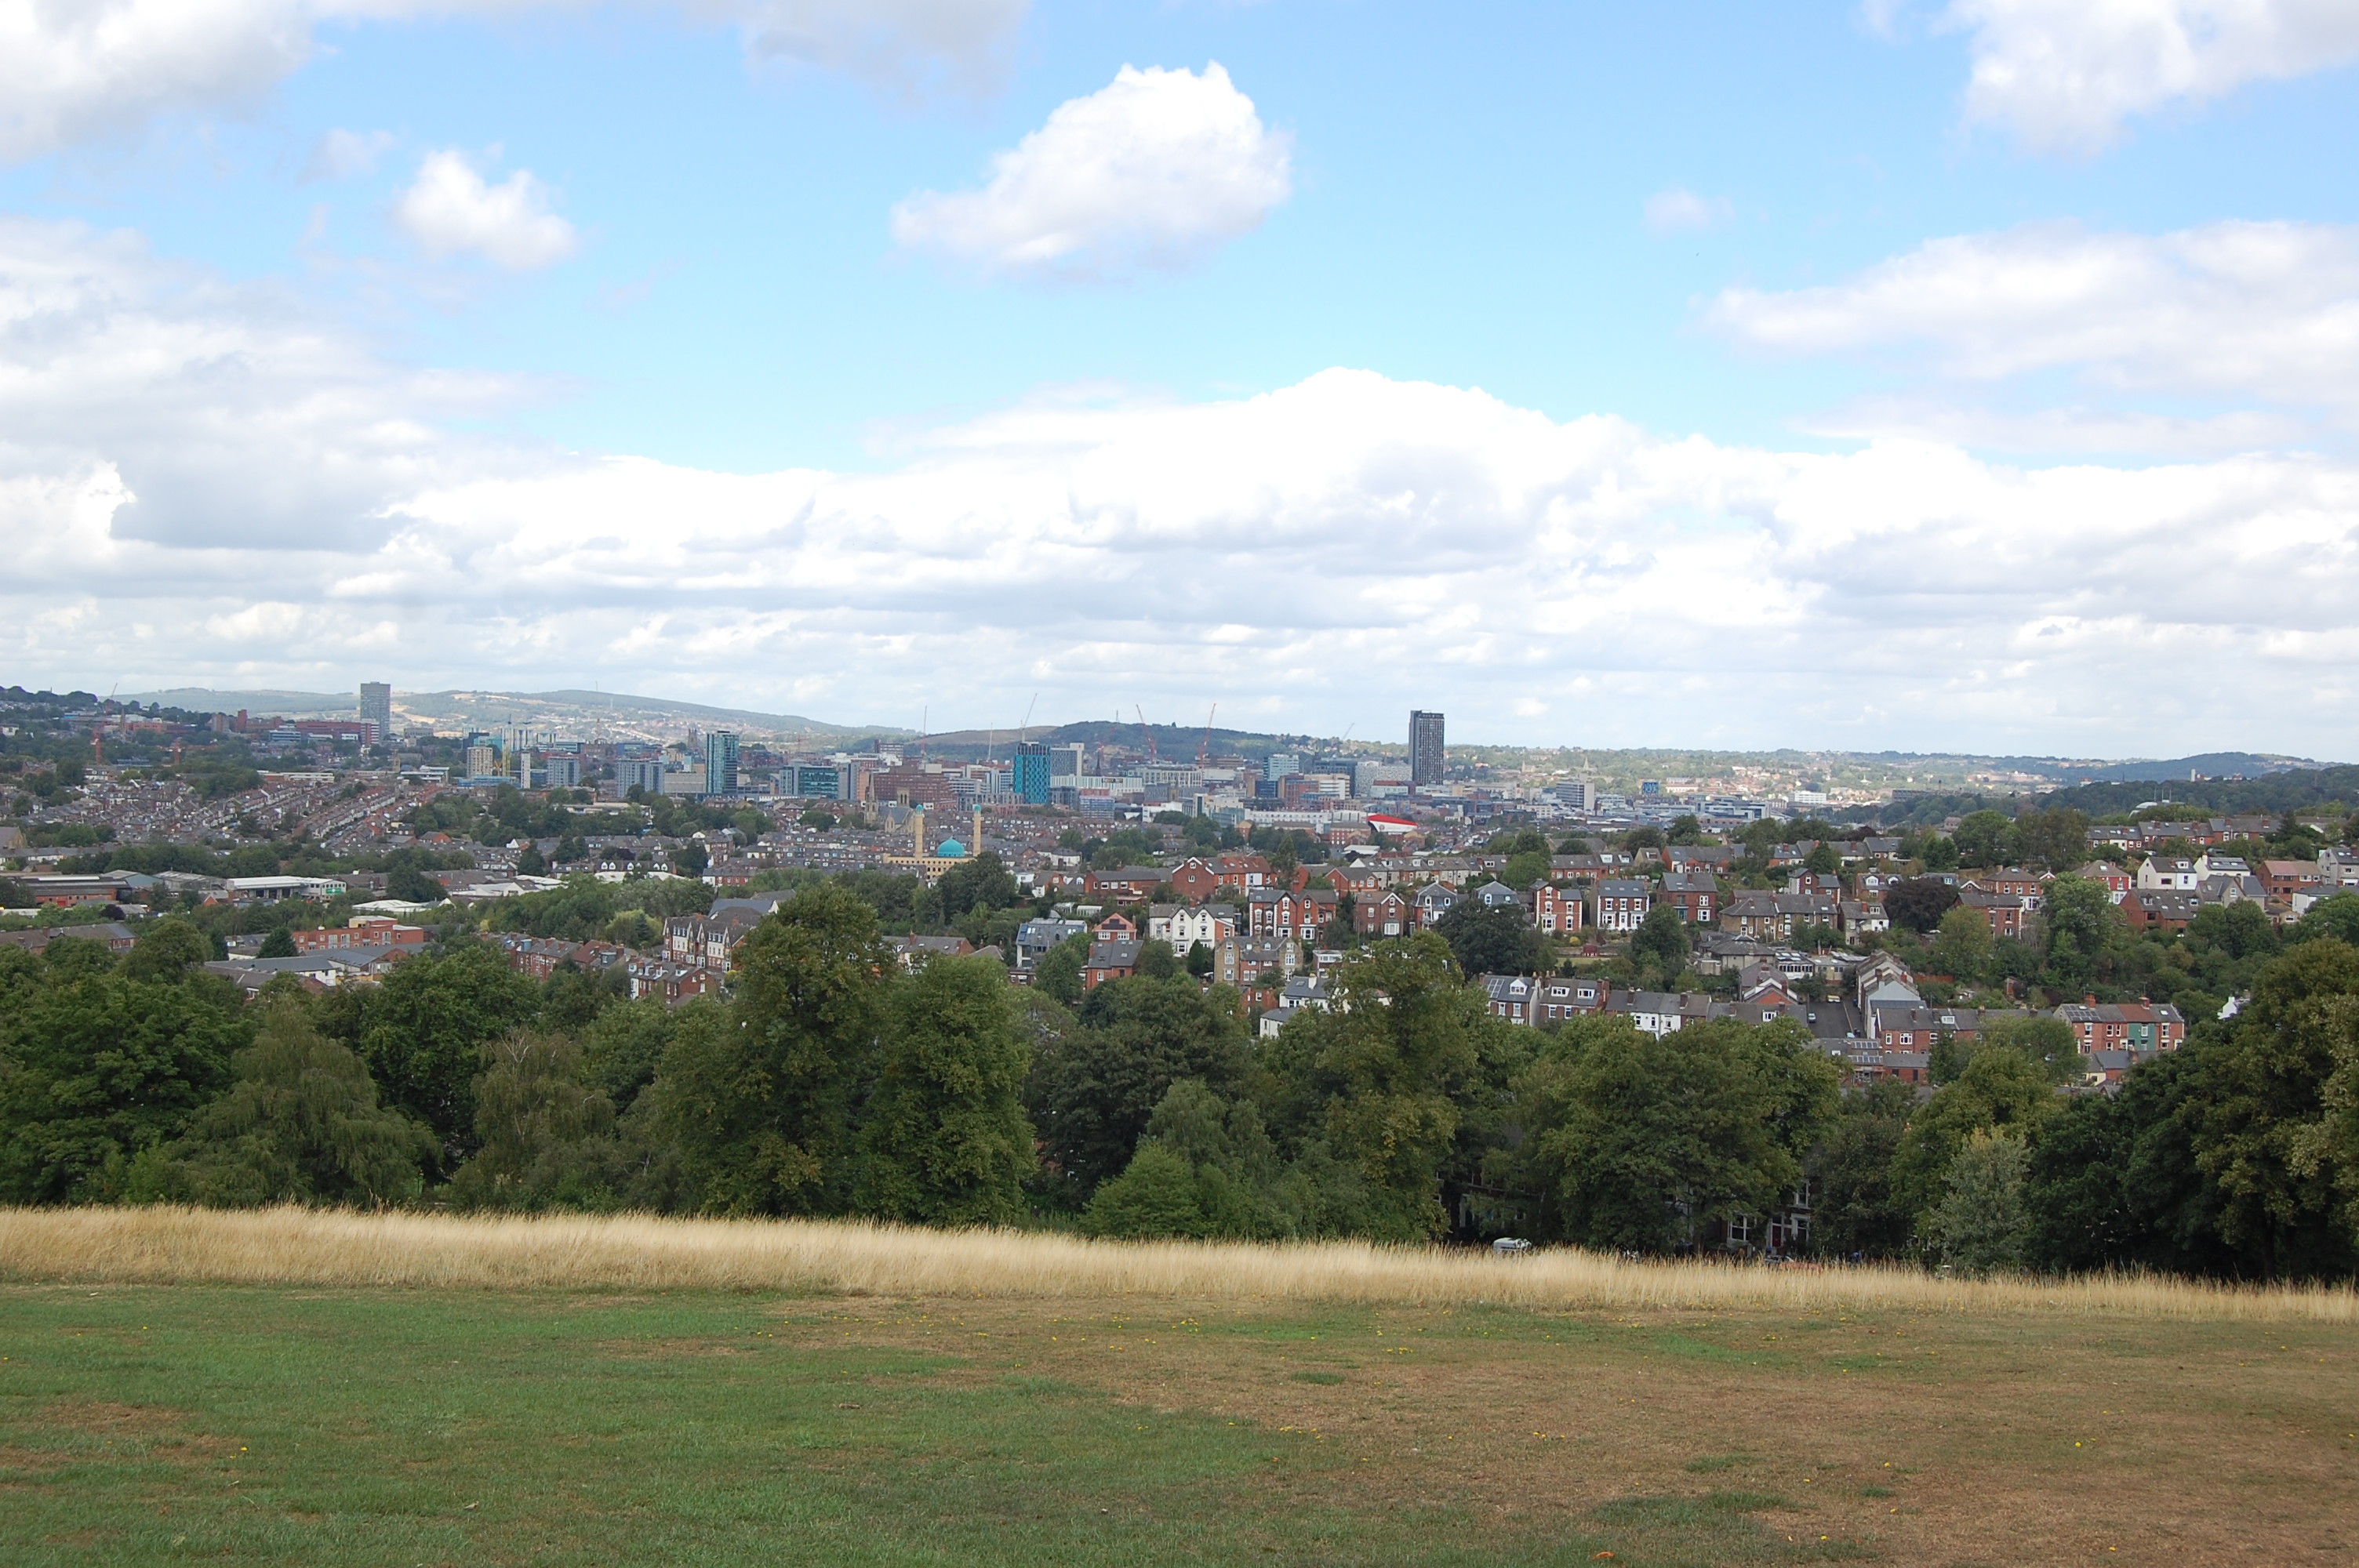 Long distance views out over the city of Sheffield from the top of Meersbrook Park with the grass and trees of the park in the foreground.